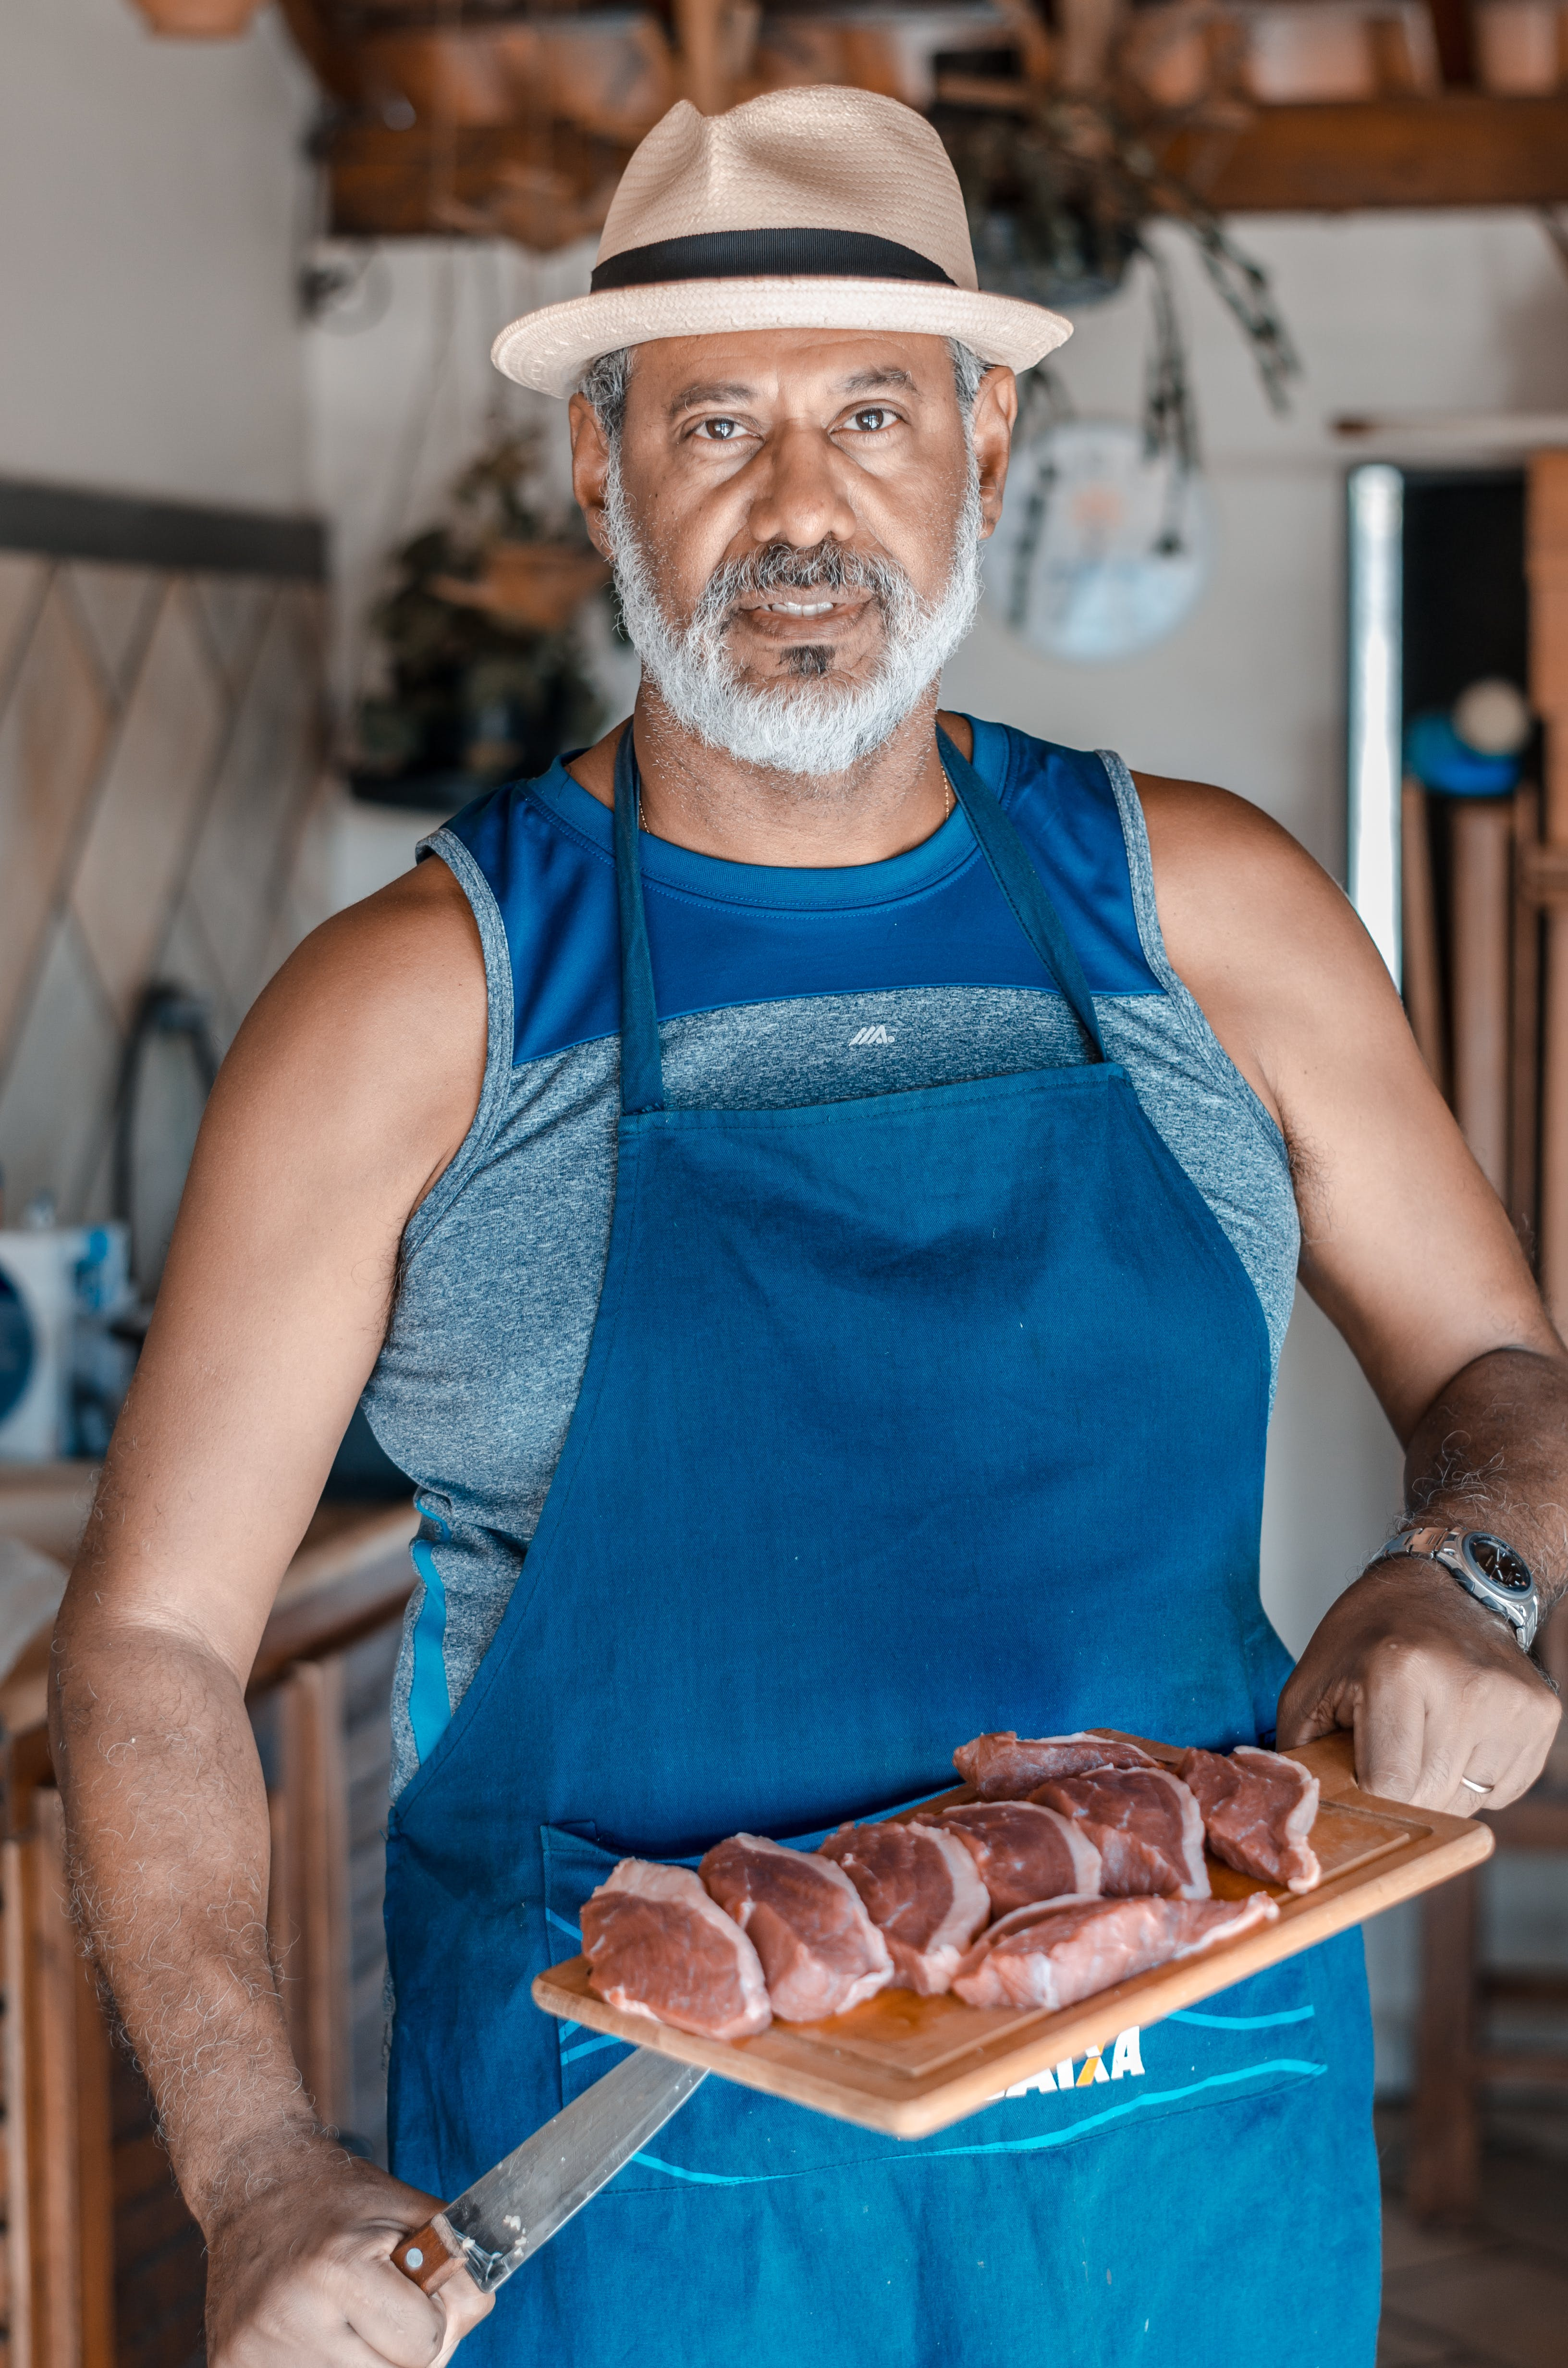 Man in Blue Kitchen Apron Holding Knife and Chopping Board With Sliced Meat